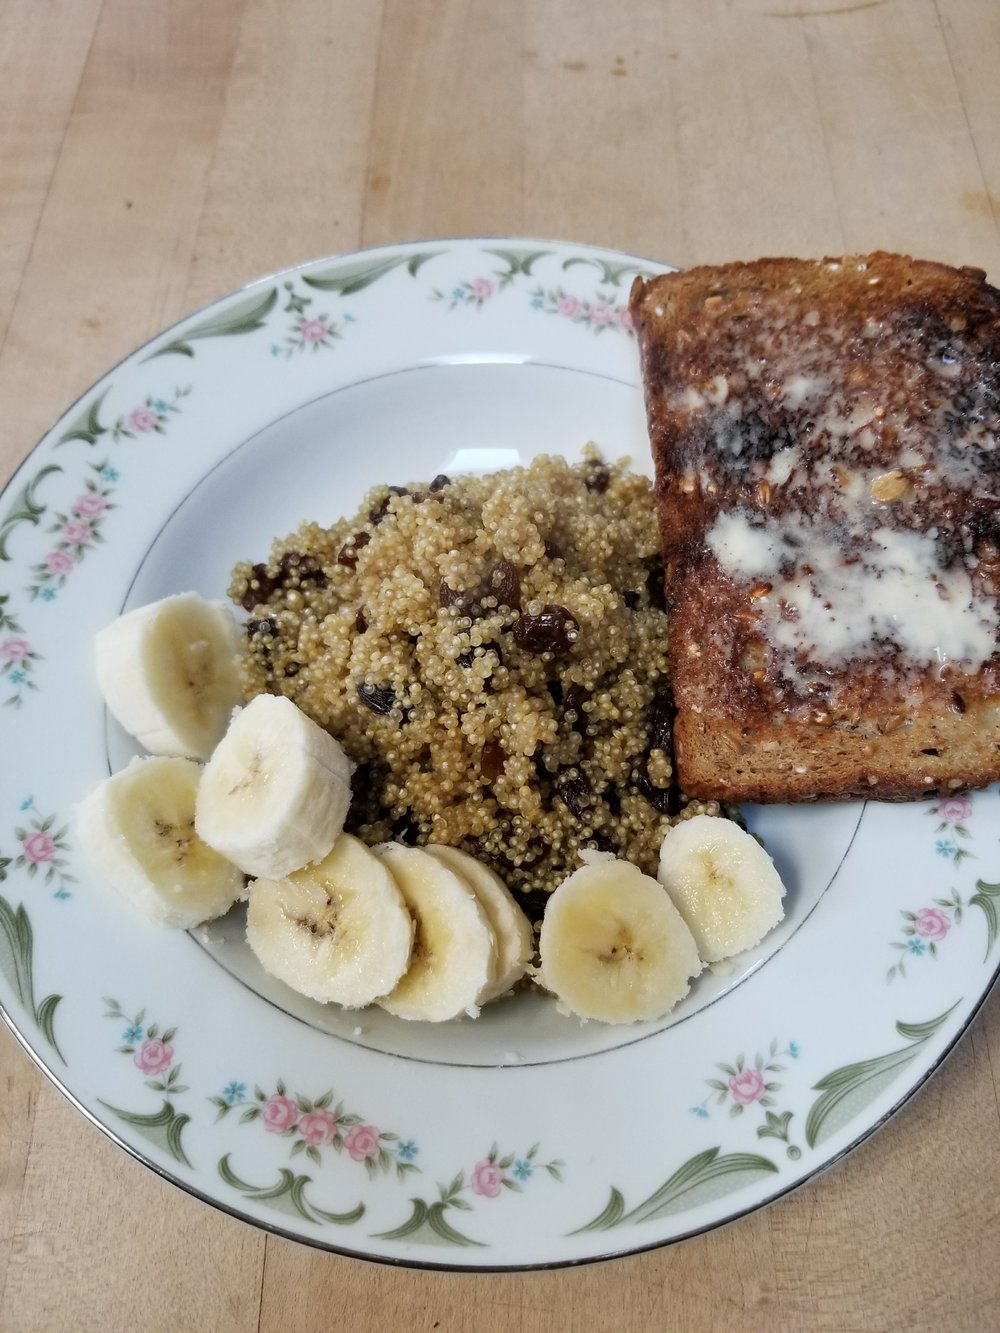 Serve as is or with cut up fruit and vegan multi grain toast with Vegan Butter. Very similar to cream of wheat in texture but full of protein instead of carbs.